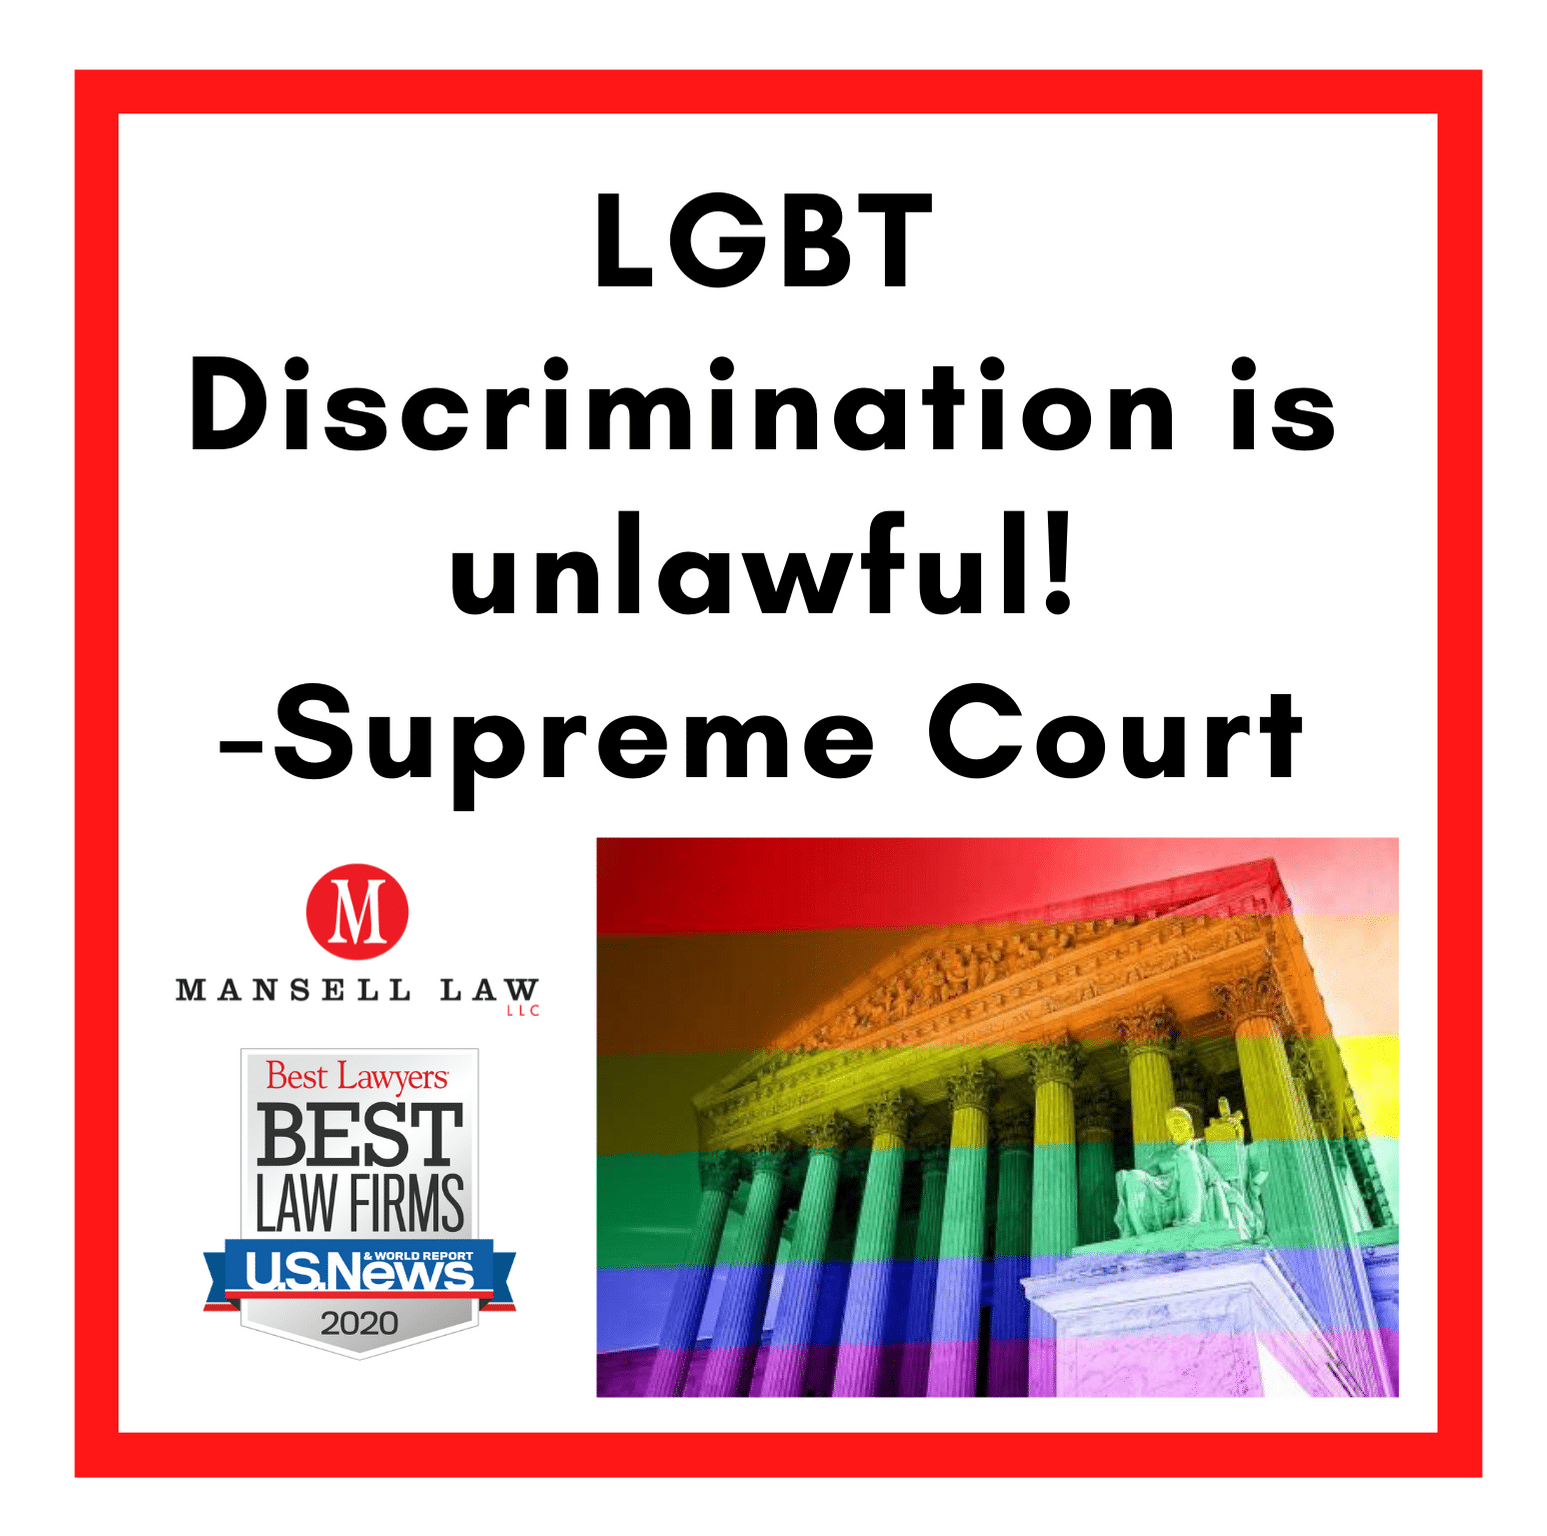 LGBT-Discrimination-Unlawful-Supreme-Court